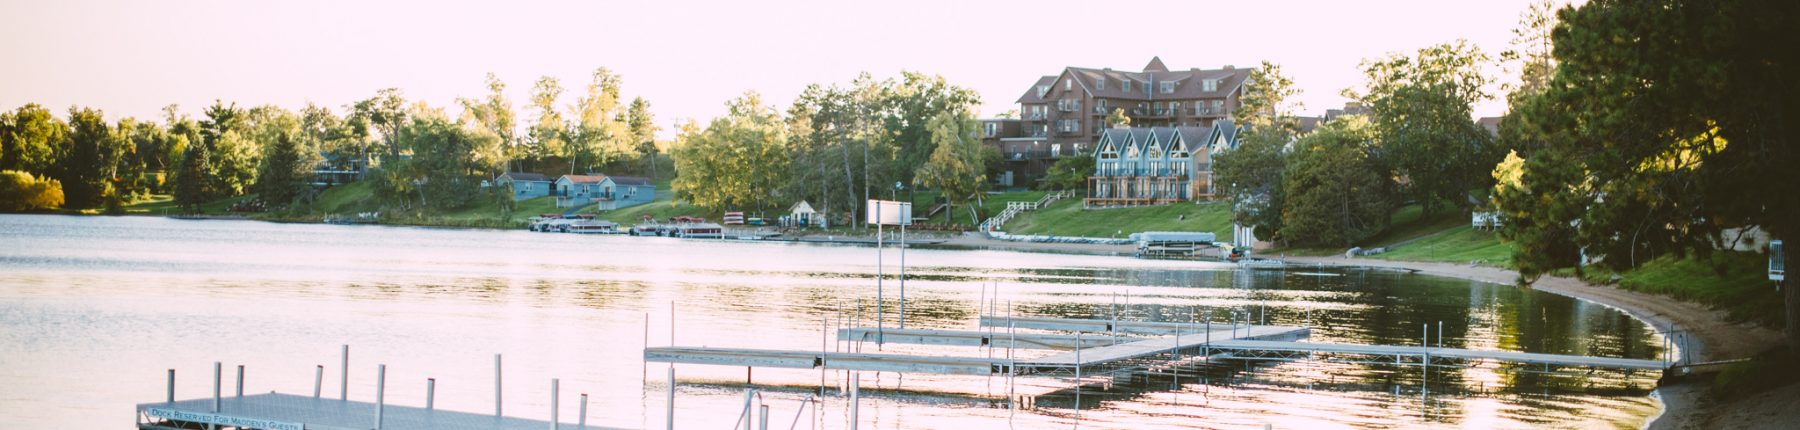 The dock at Madden's on Gull Lake